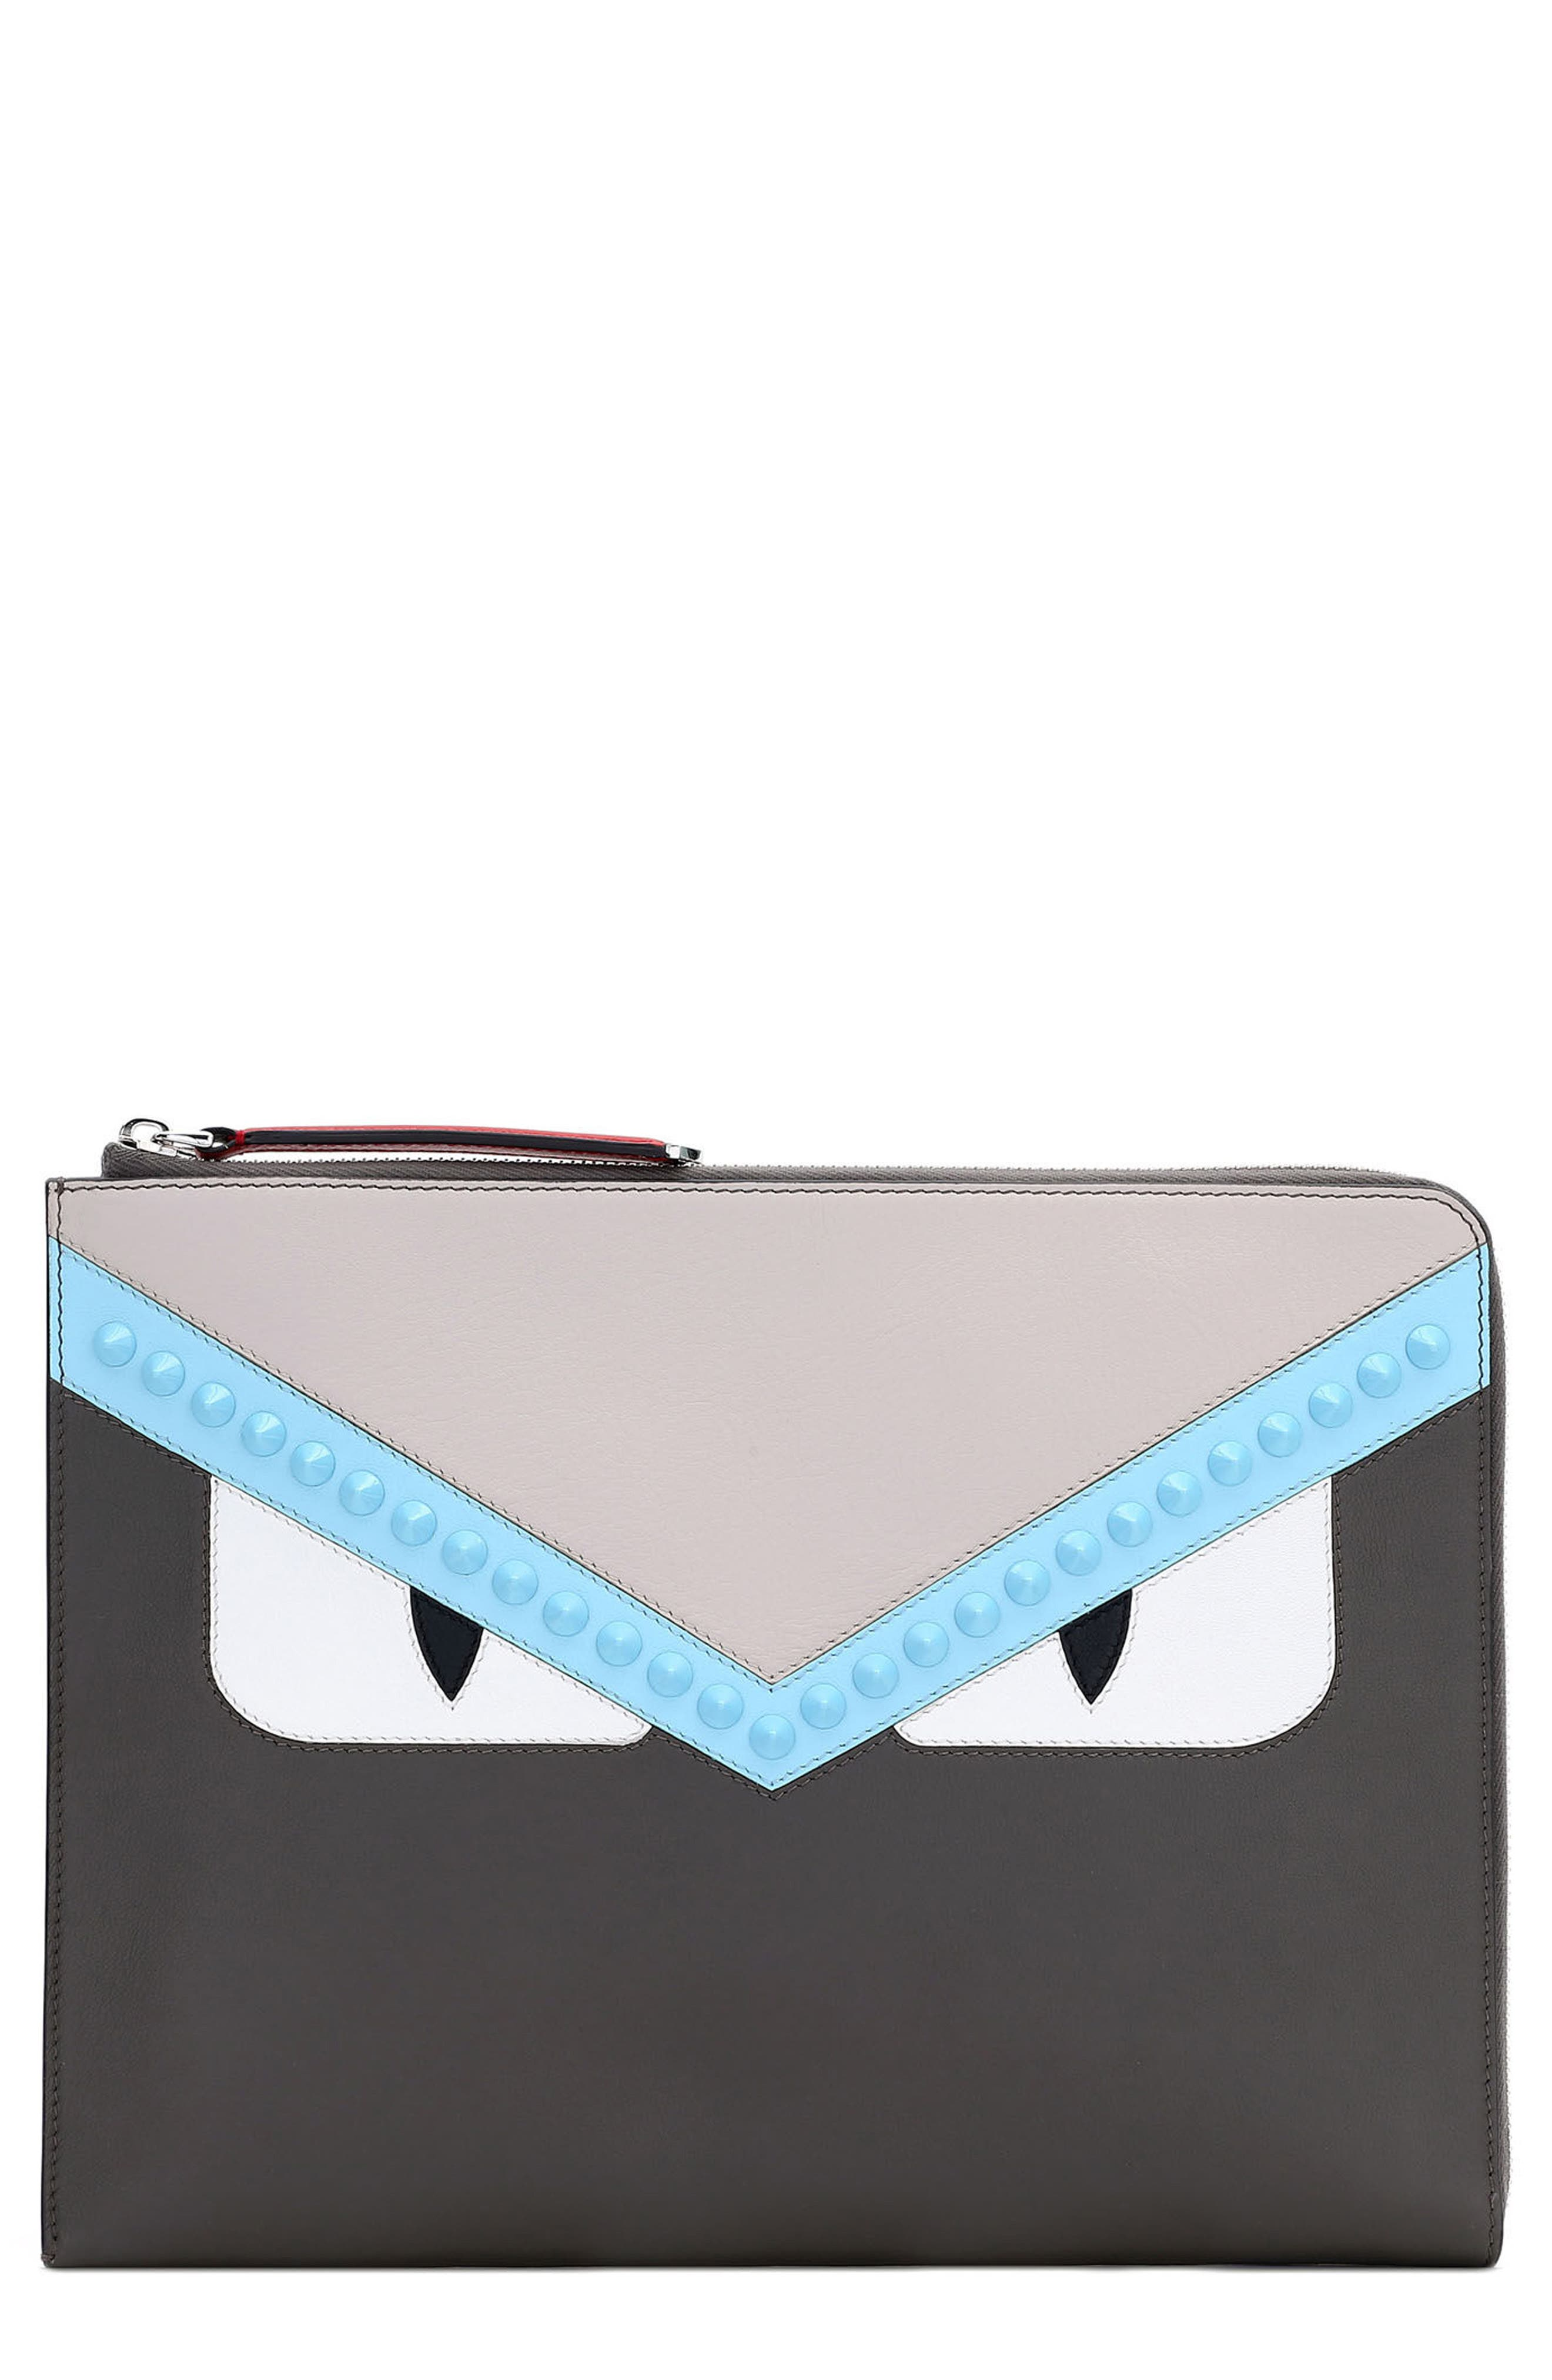 Alternate Image 1 Selected - Fendi Large Monster Leather Zip Pouch